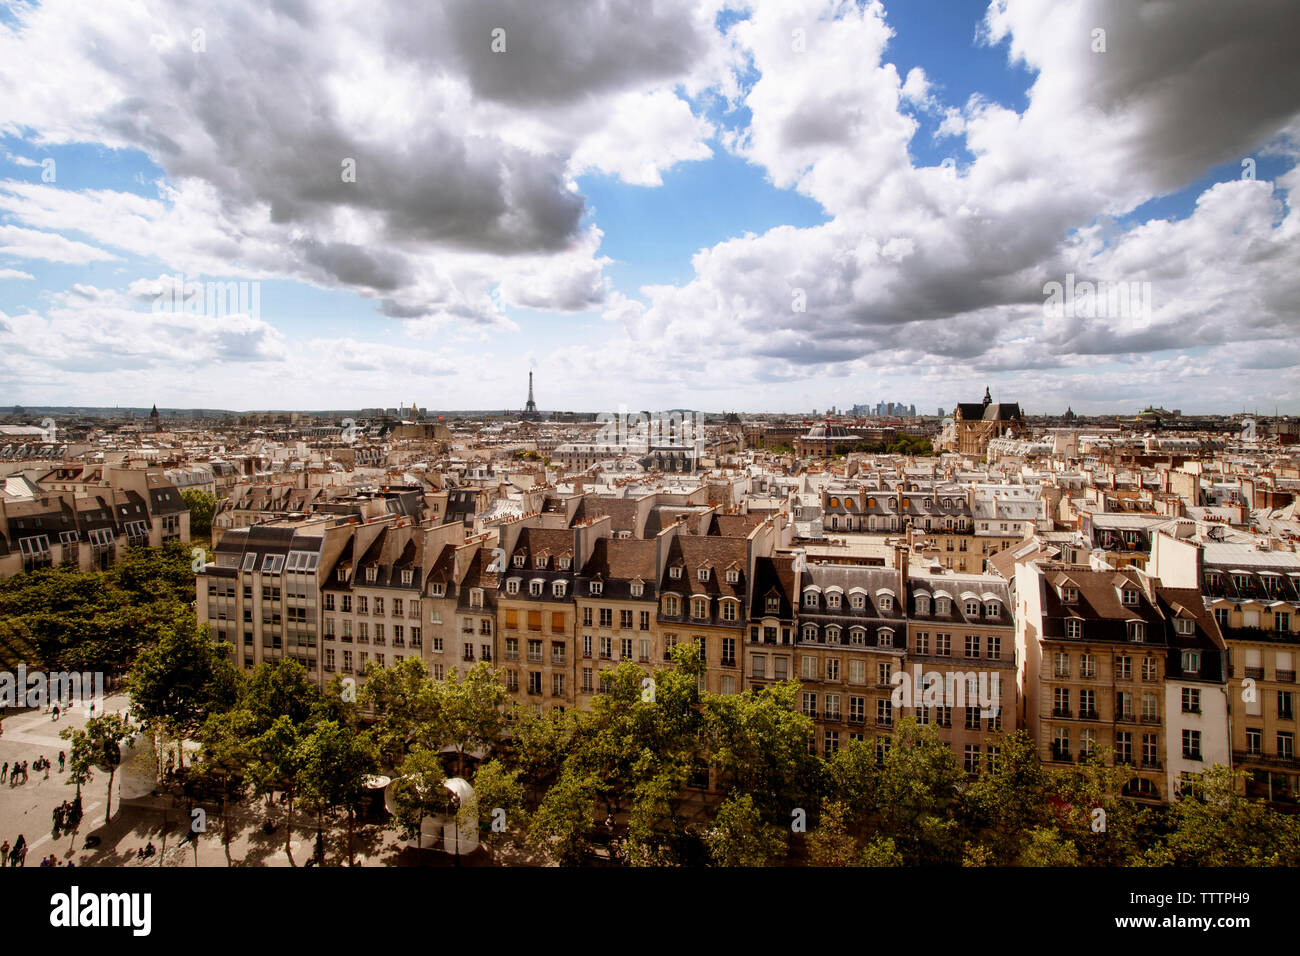 Aerial view of cityscape with Eiffel tower against cloudy sky Stock Photo